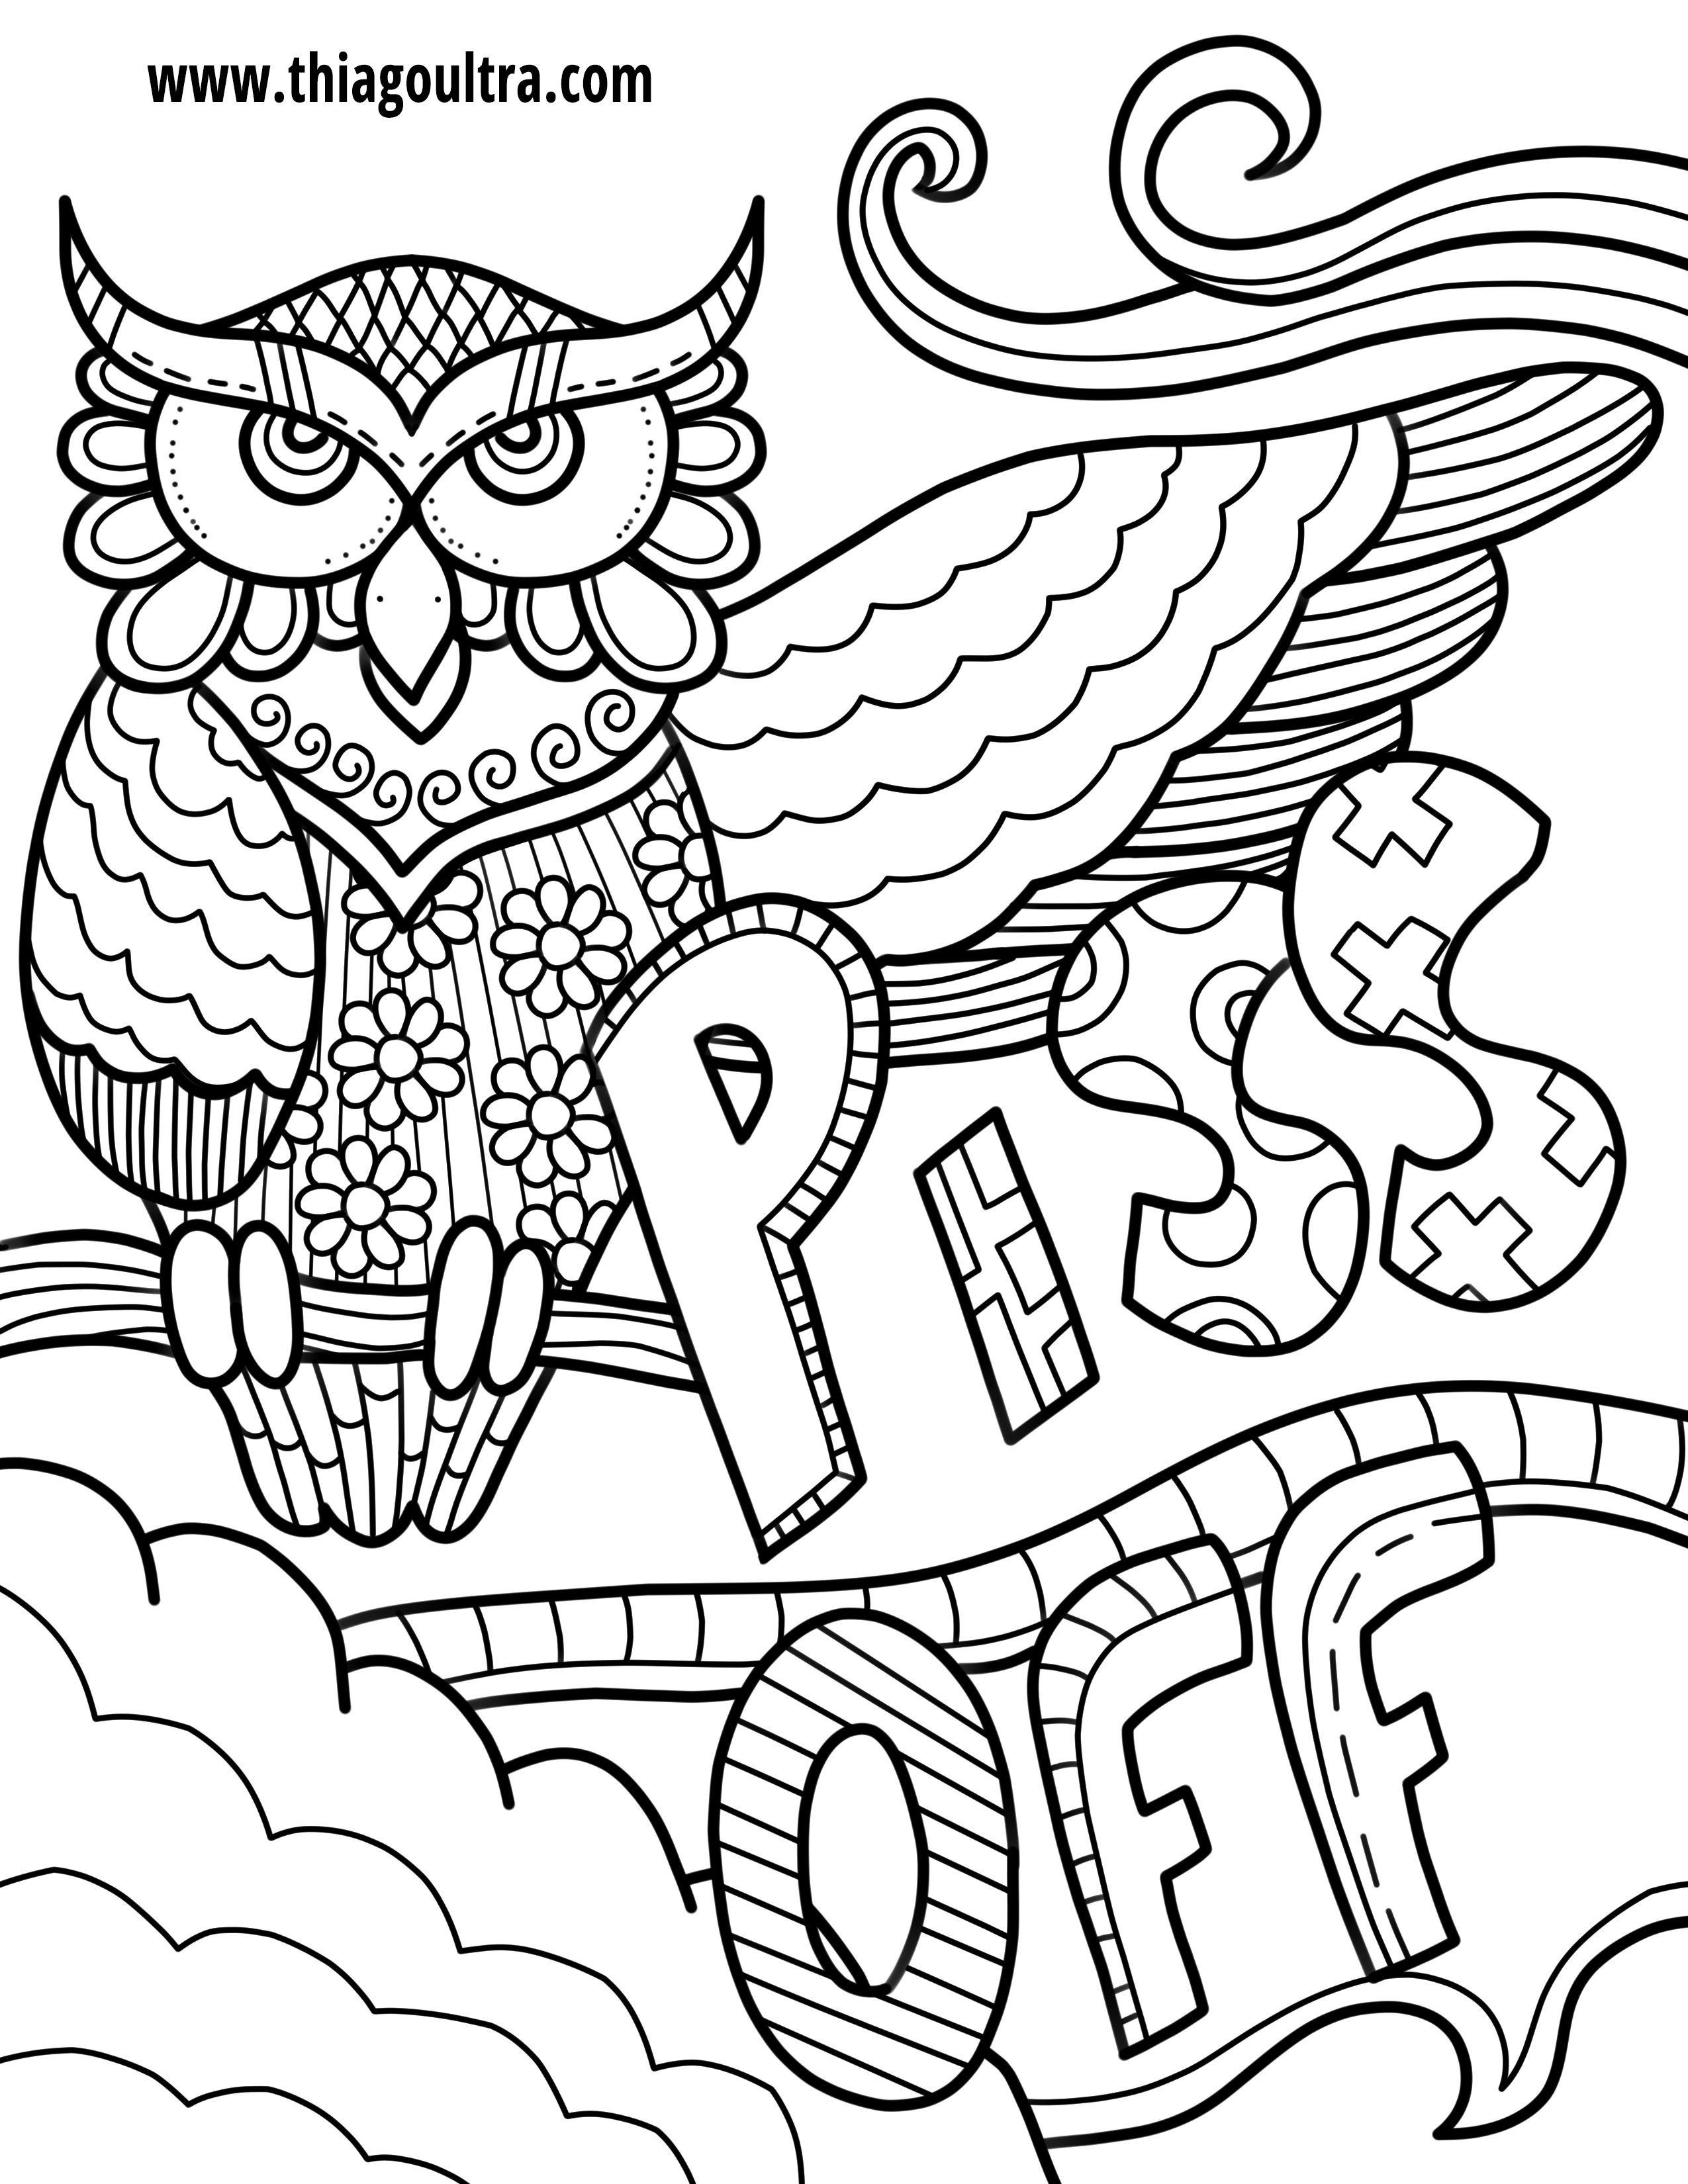 Unique Free Printable Coloring Pages For Adults Only Swear Words - Free Printable Coloring Pages For Adults Only Swear Words